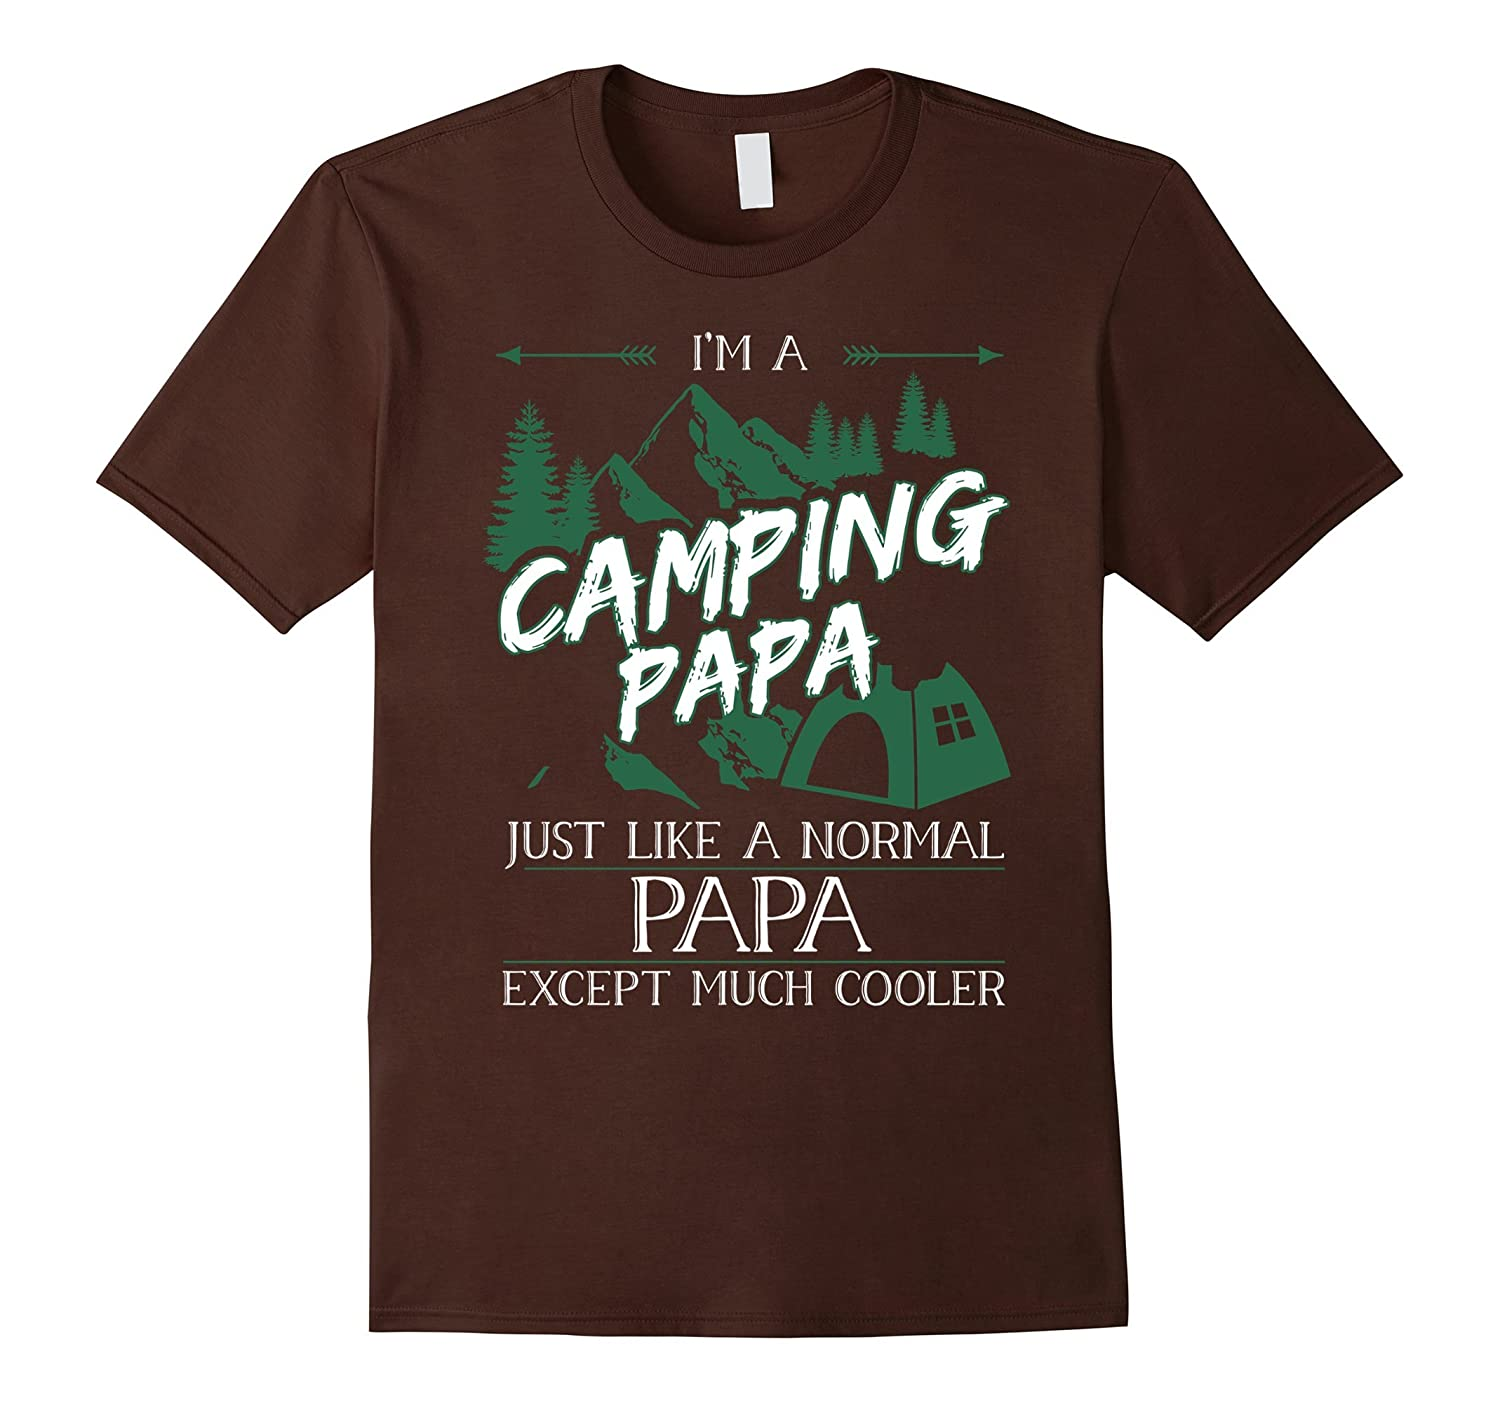 mens im a camping papa t shirt camping papa tshirt goatstee. Black Bedroom Furniture Sets. Home Design Ideas